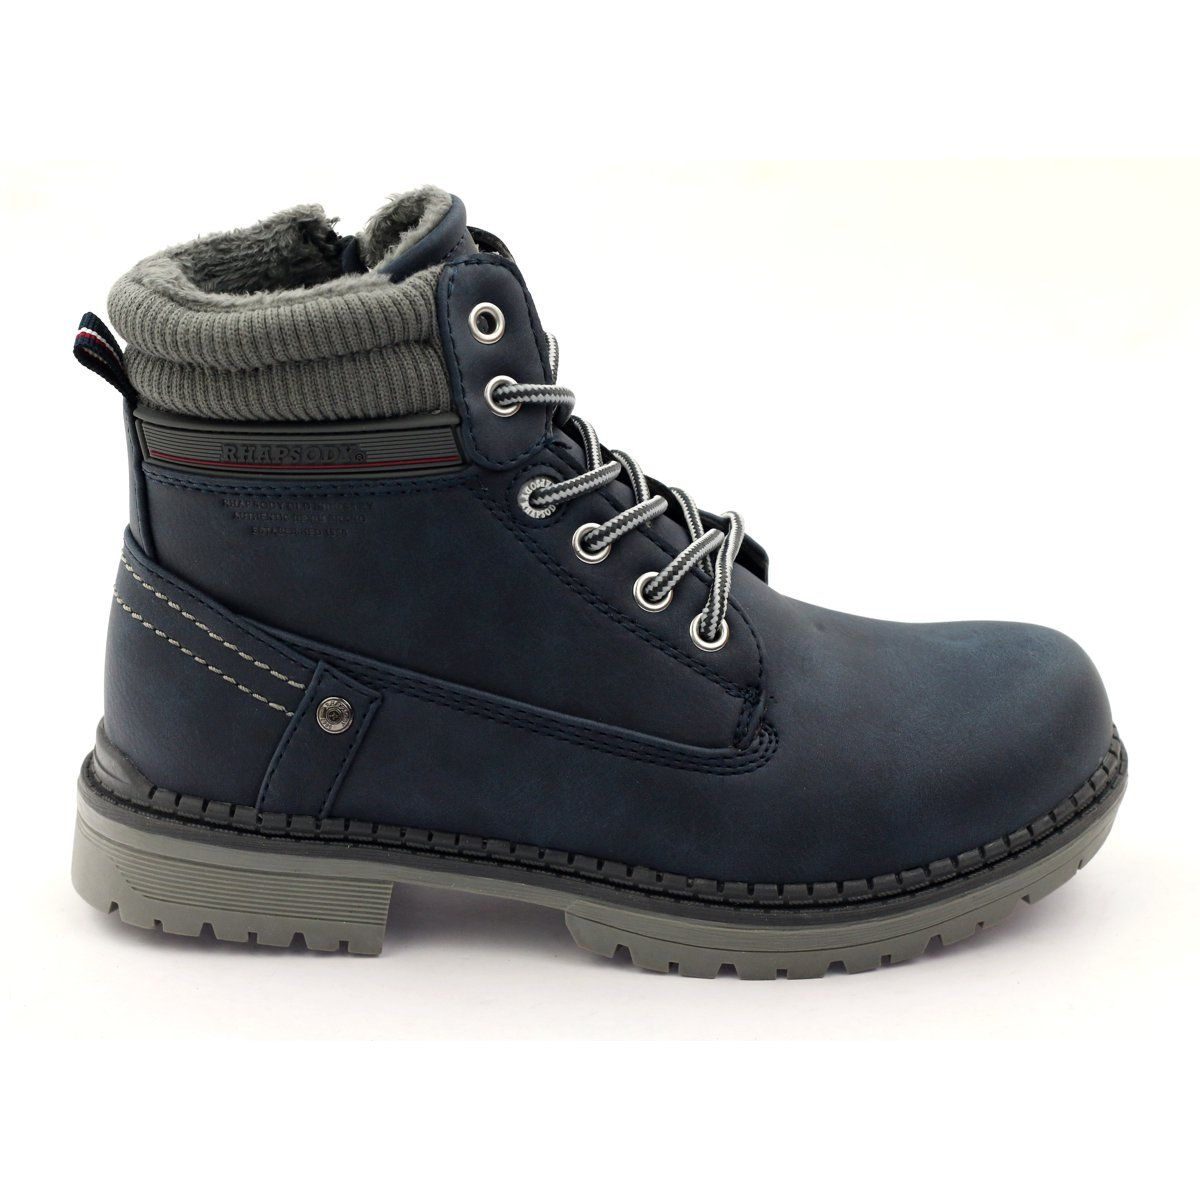 American Club Boots Shoes American 808123 Slider Navy Grey Boots Shoe Boots Kid Shoes